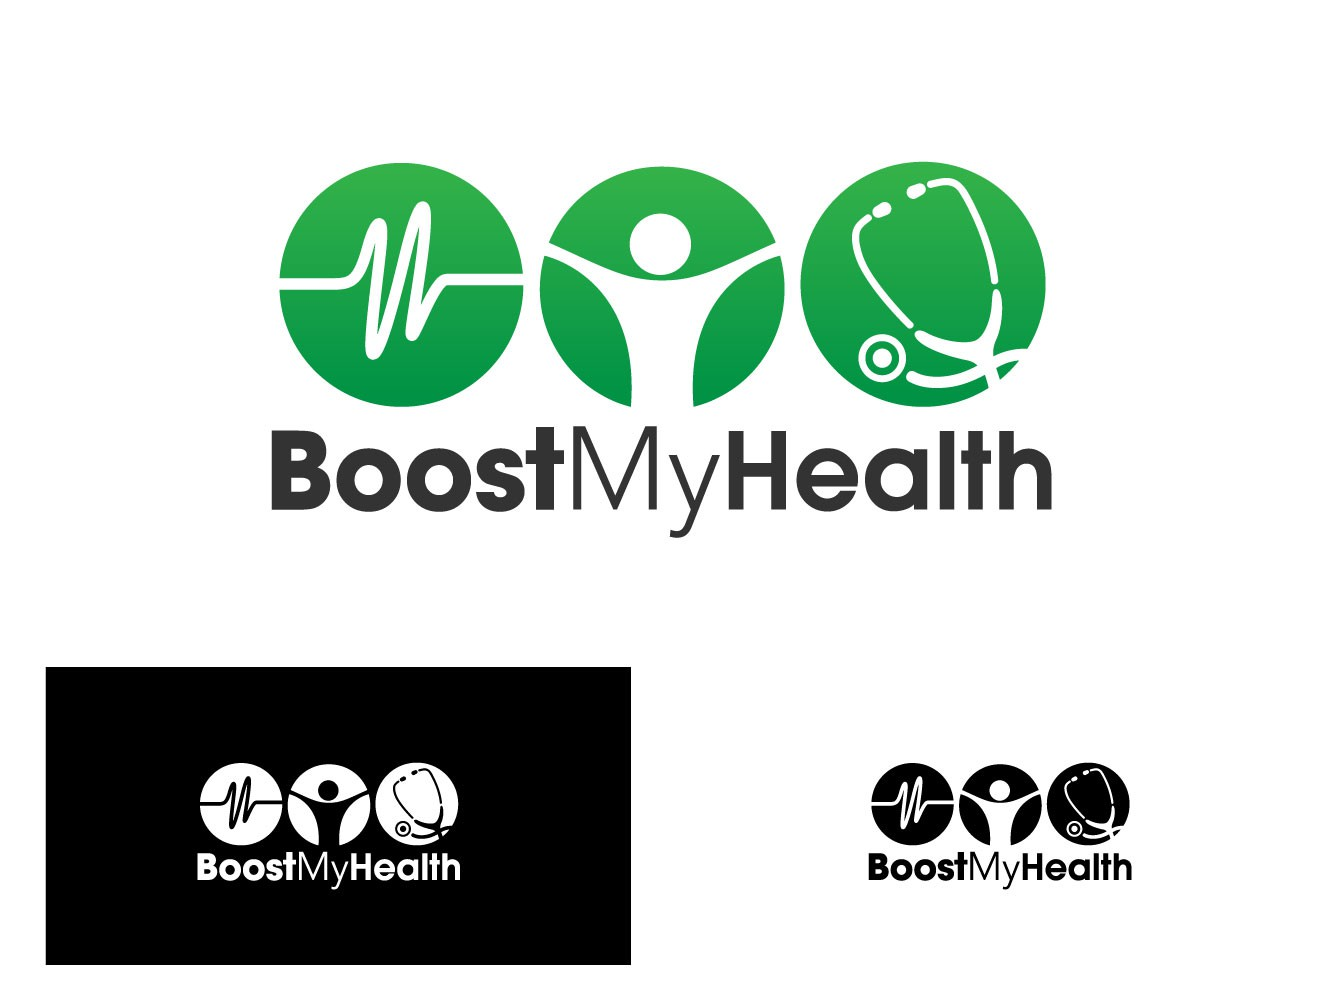 Boost My Health needs a new logo